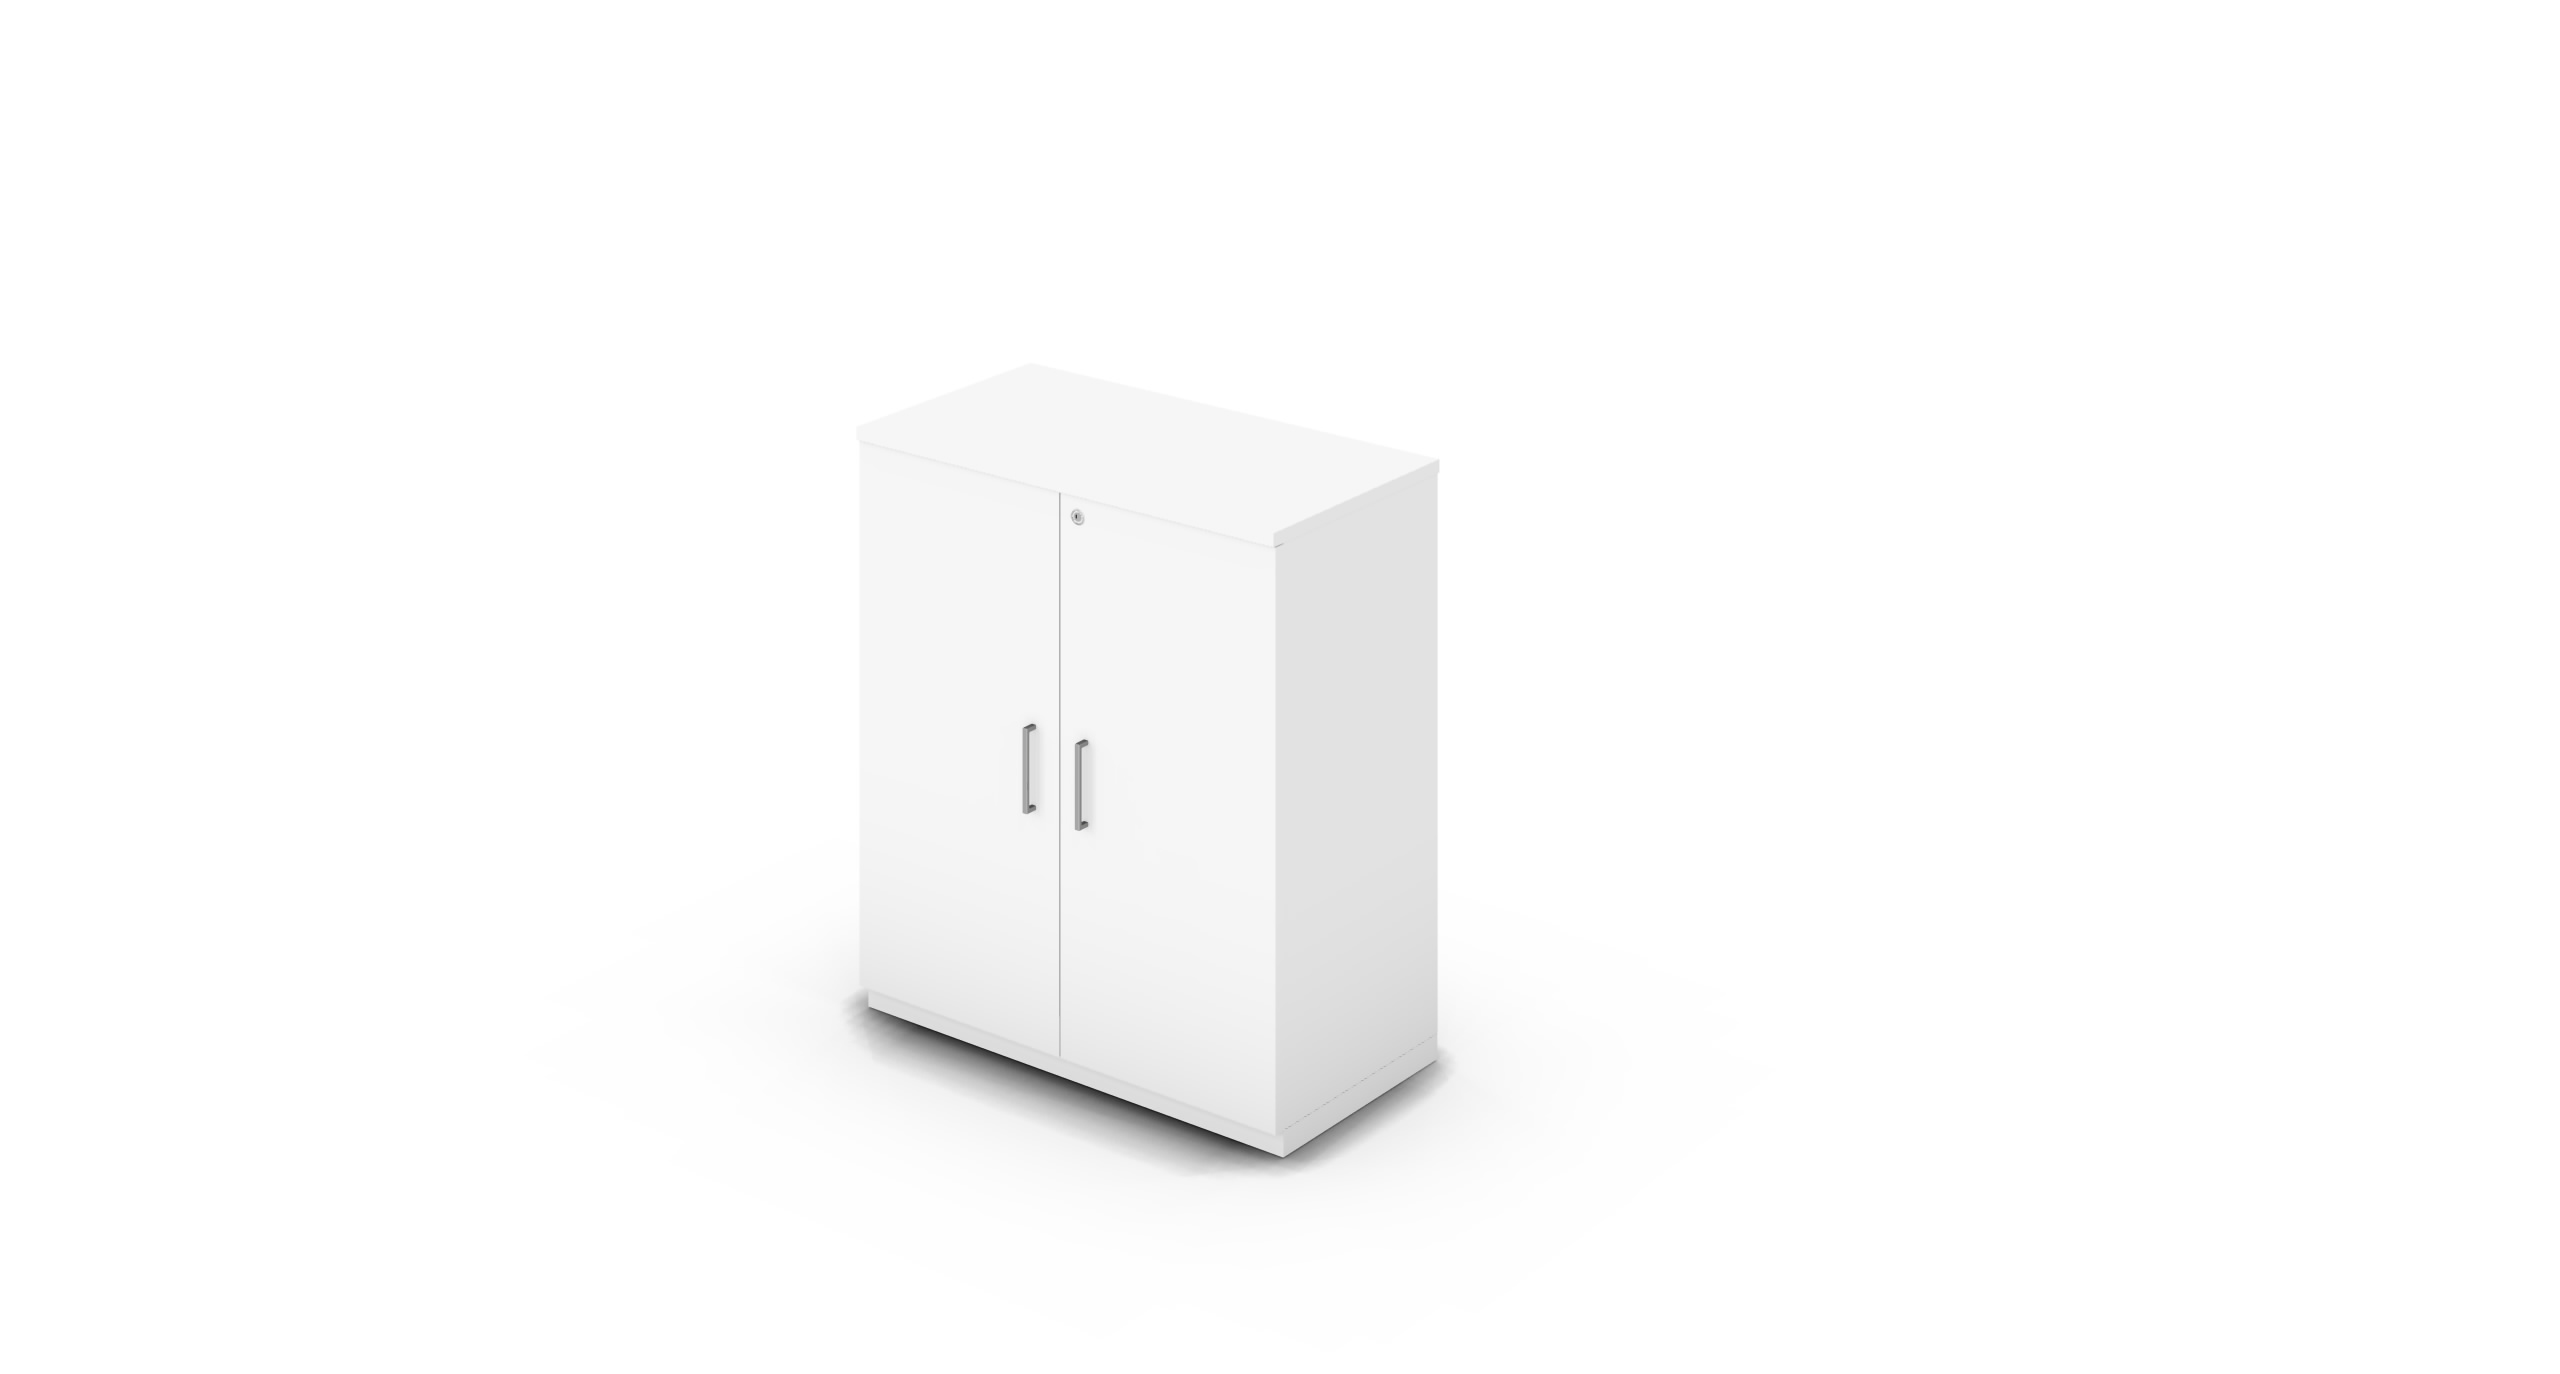 Cabinet_900x450x1125_HD_White_Bar_Square_WithCylinder